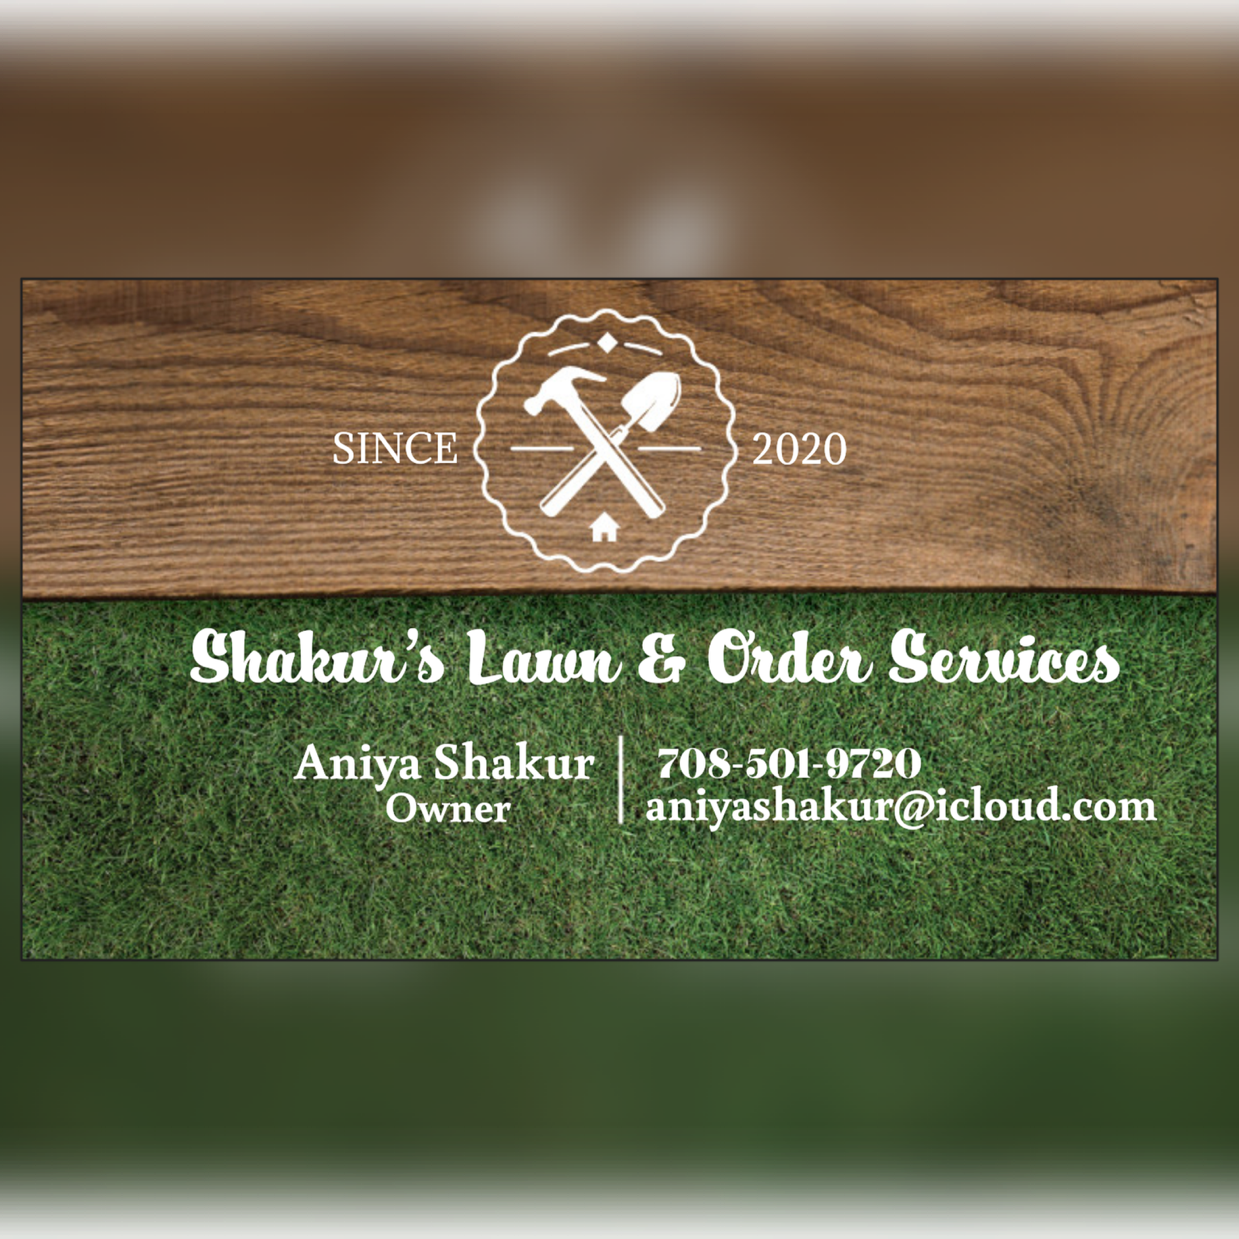 Shakurs Lawn & Order Services